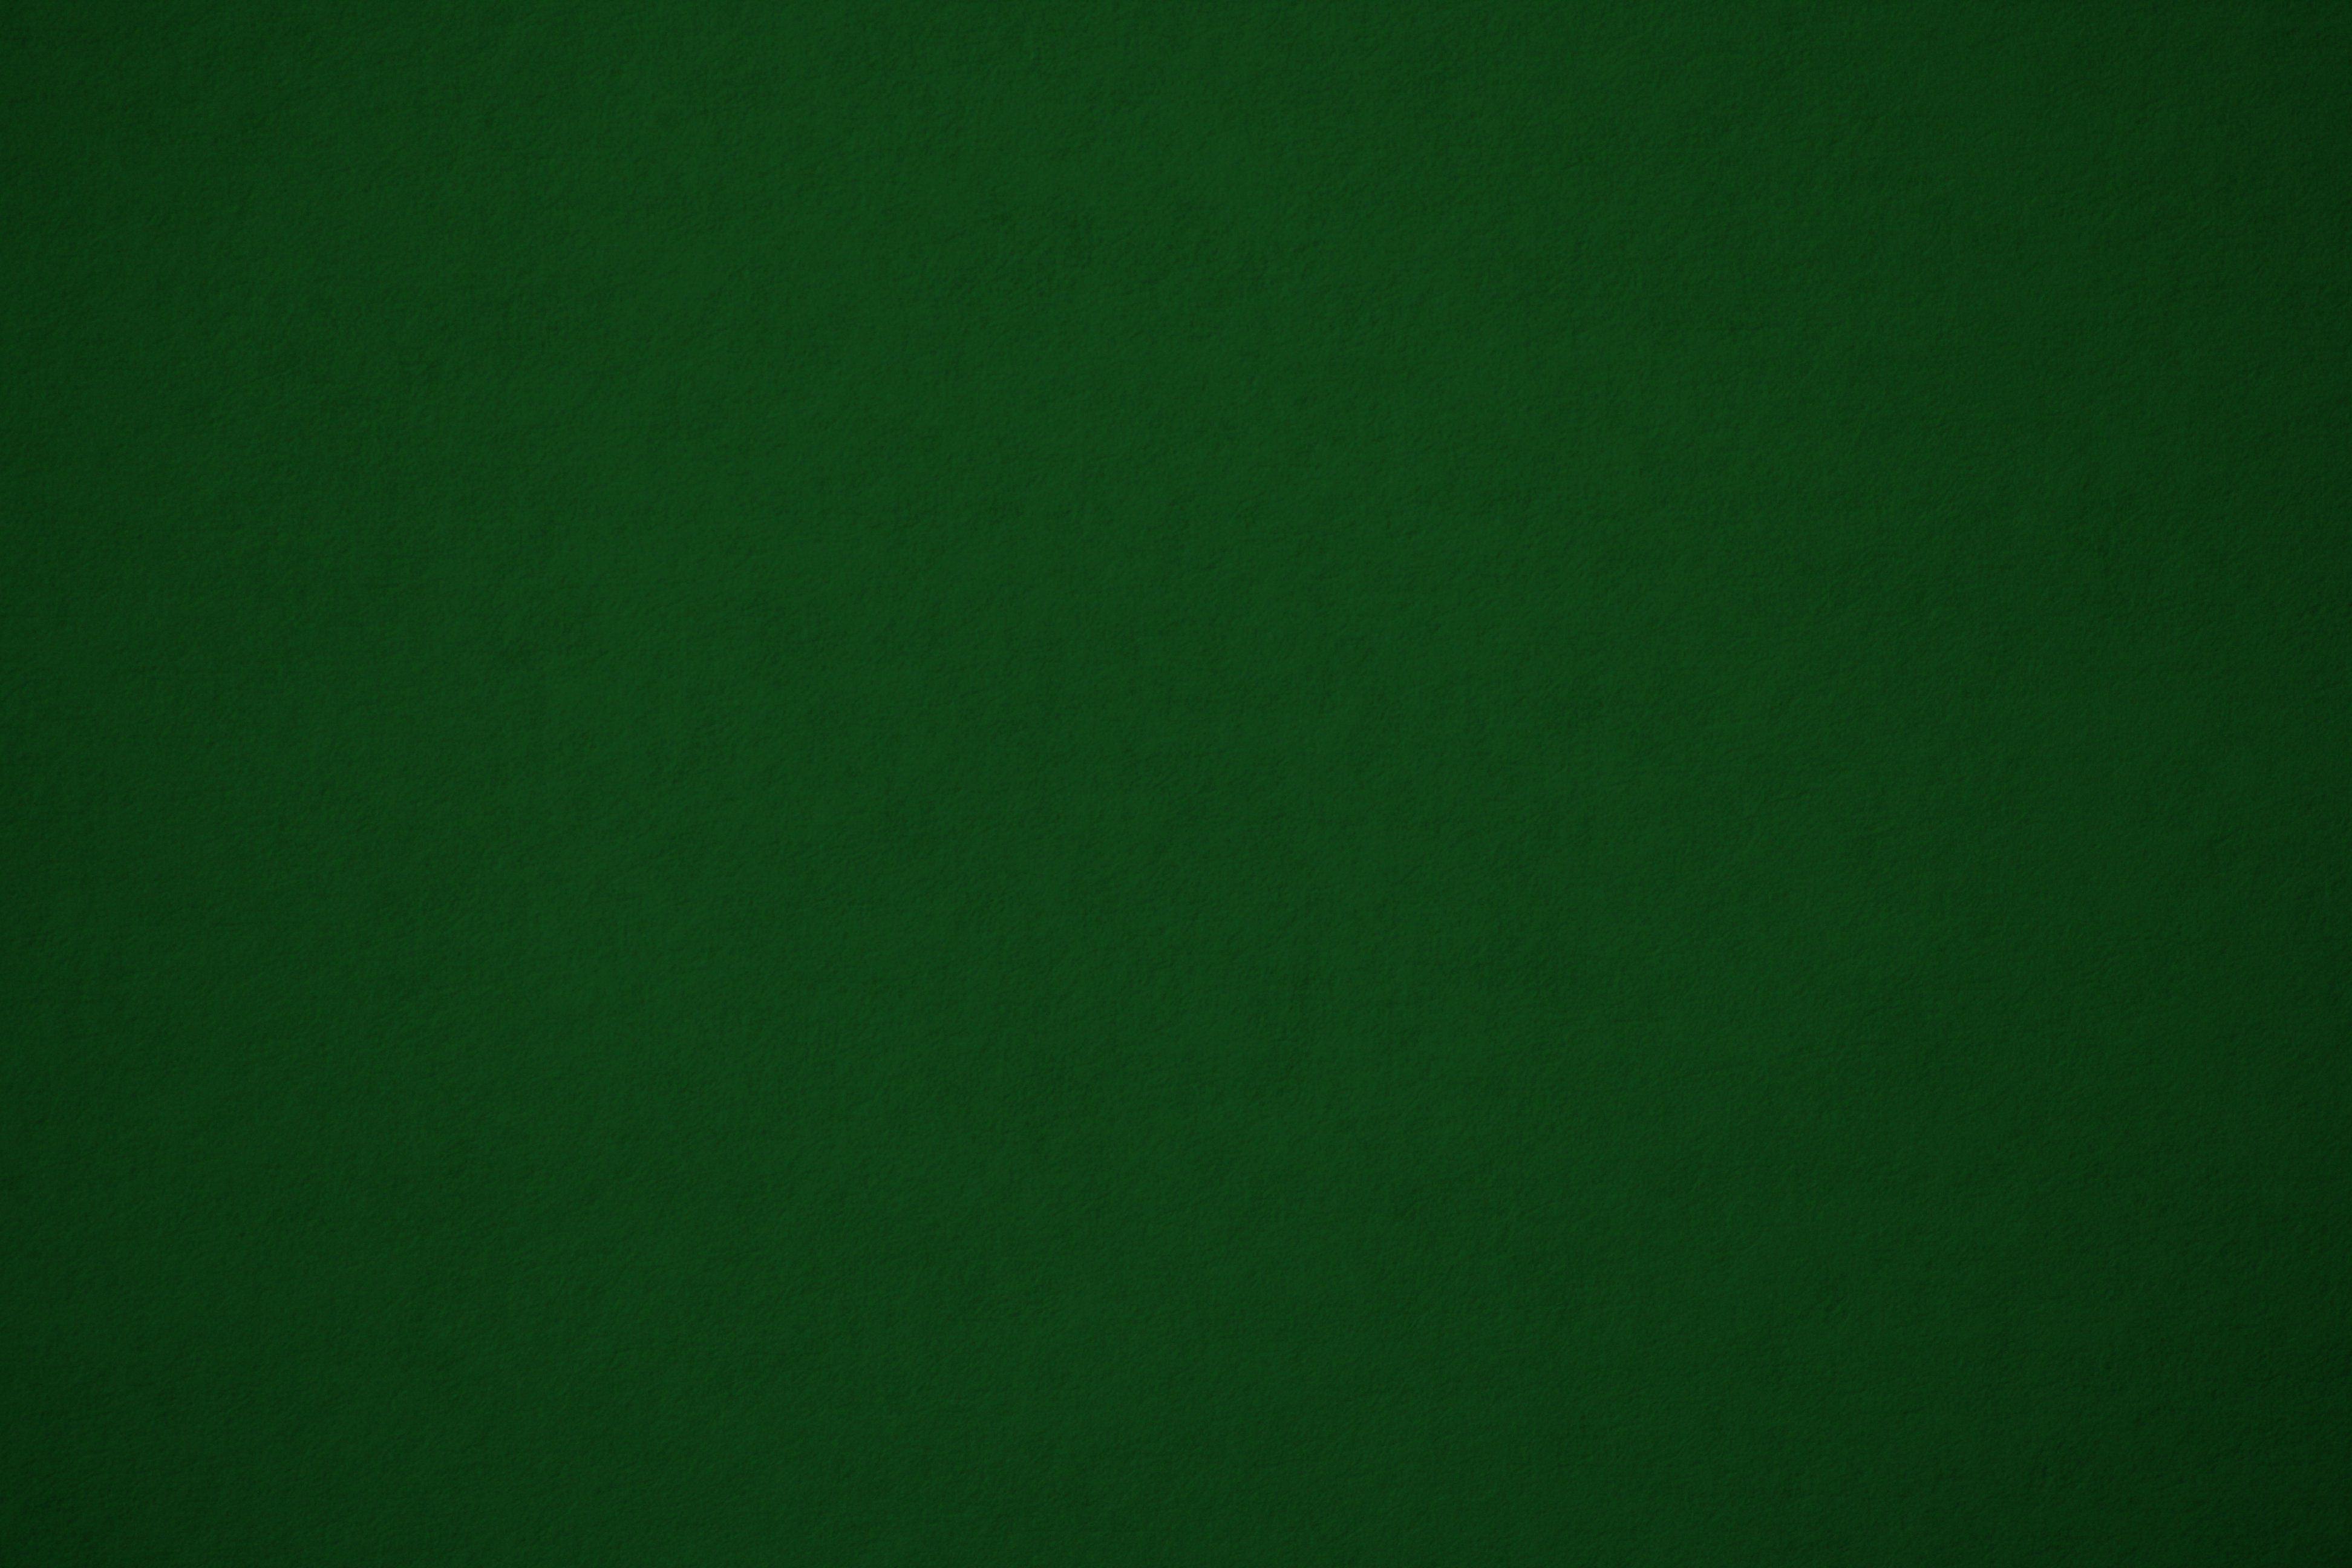 Forest green paper texture picture free photograph for Dark forest green paint